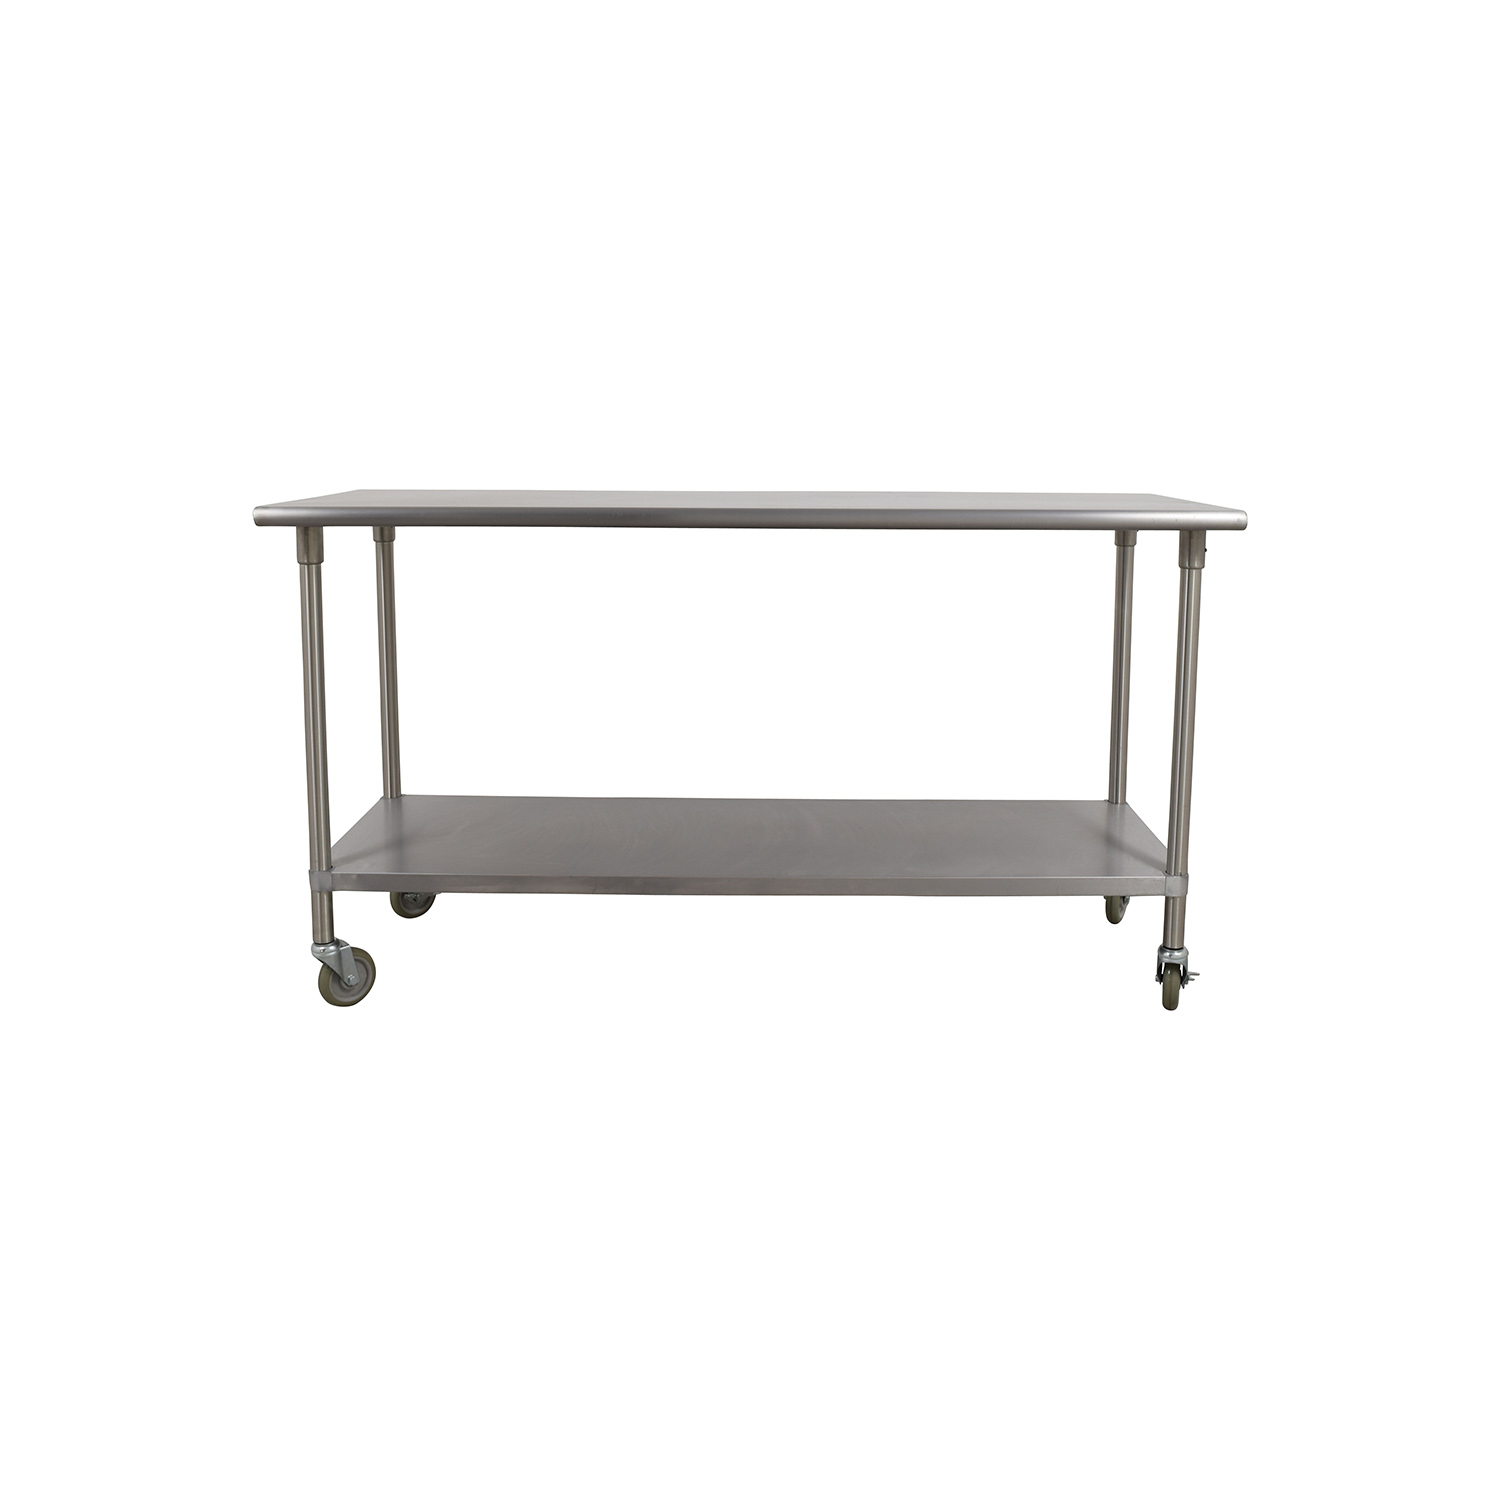 shop Bowery Kitchen Bowery Kitchen Stainless Steel Table online